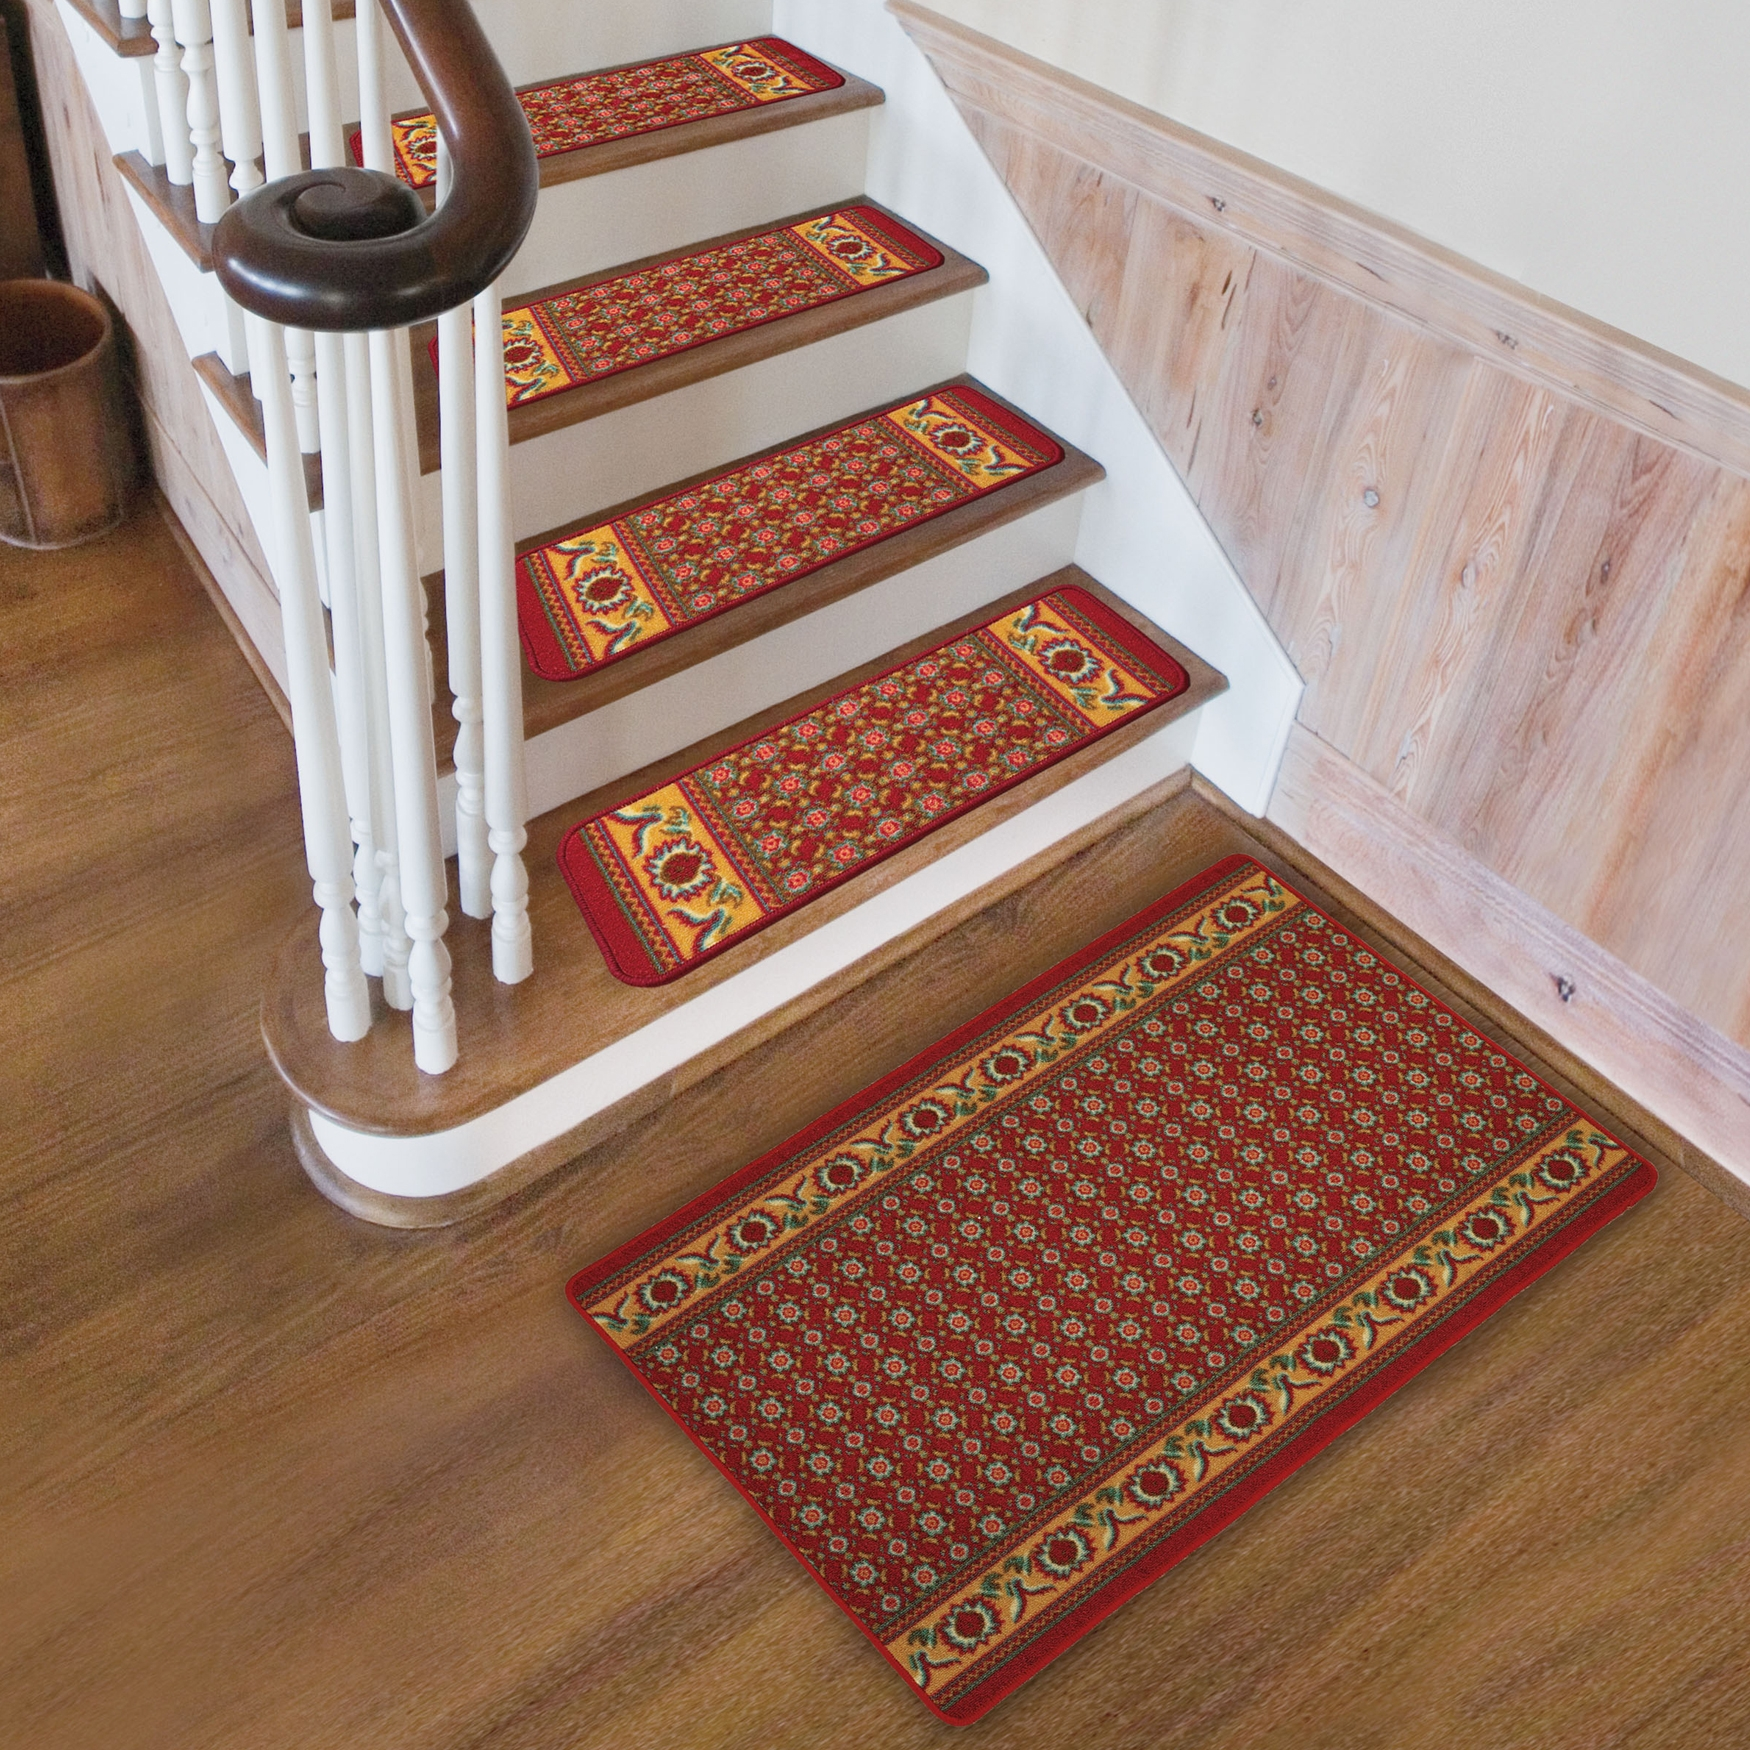 Entry Mudroom Wondrous Carpet Stair Treads With Classic Colors Throughout Carpet Strips For Stairs (Image 6 of 15)